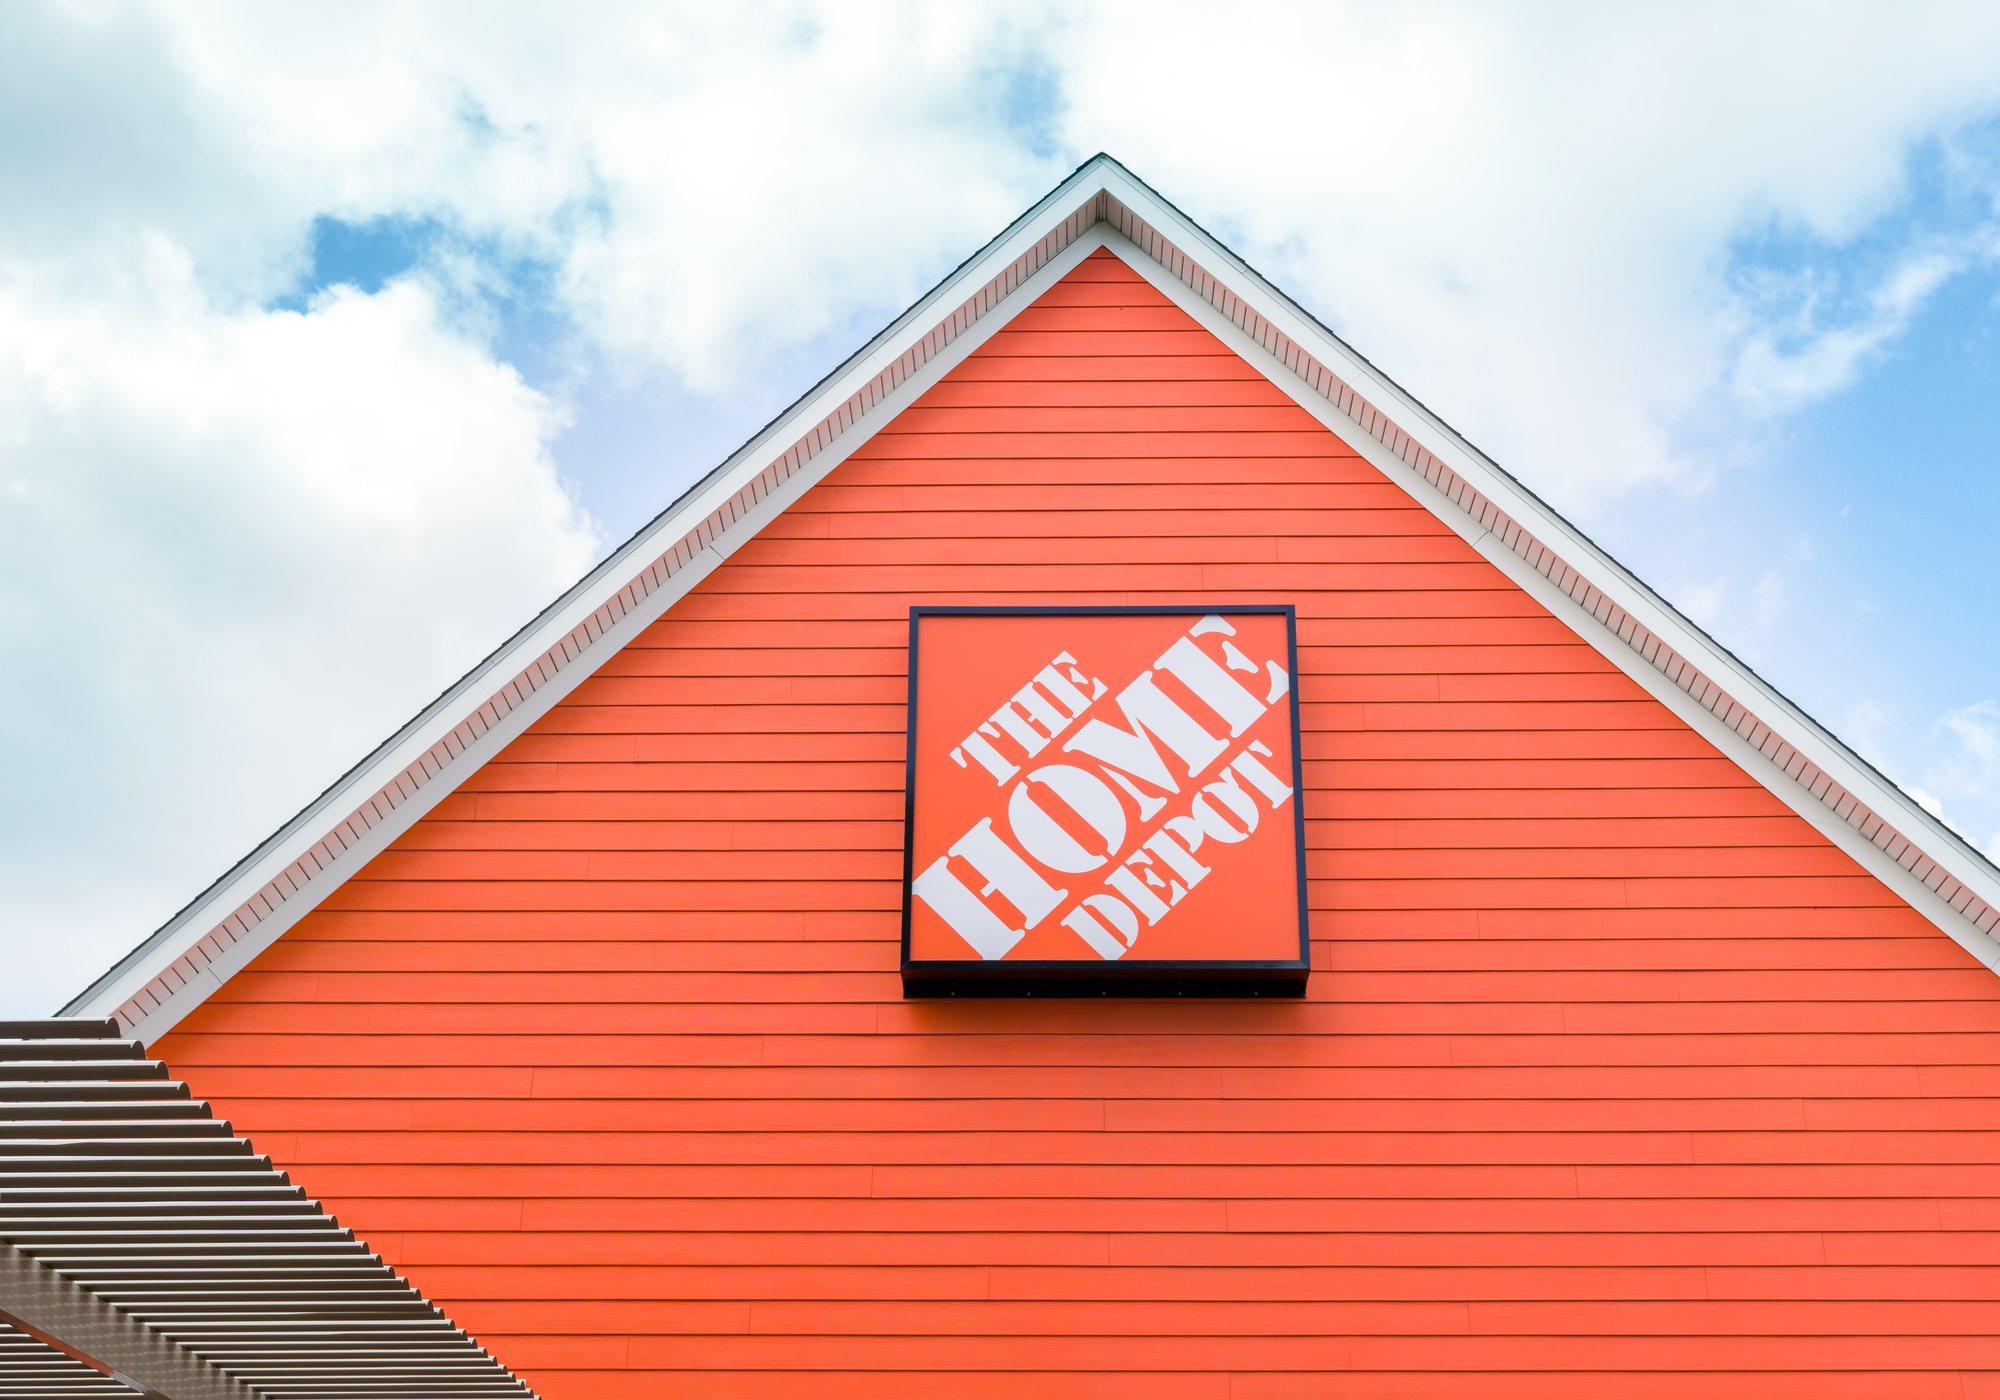 Home Depot agrees $17.5m settlement for 2014 mega breach